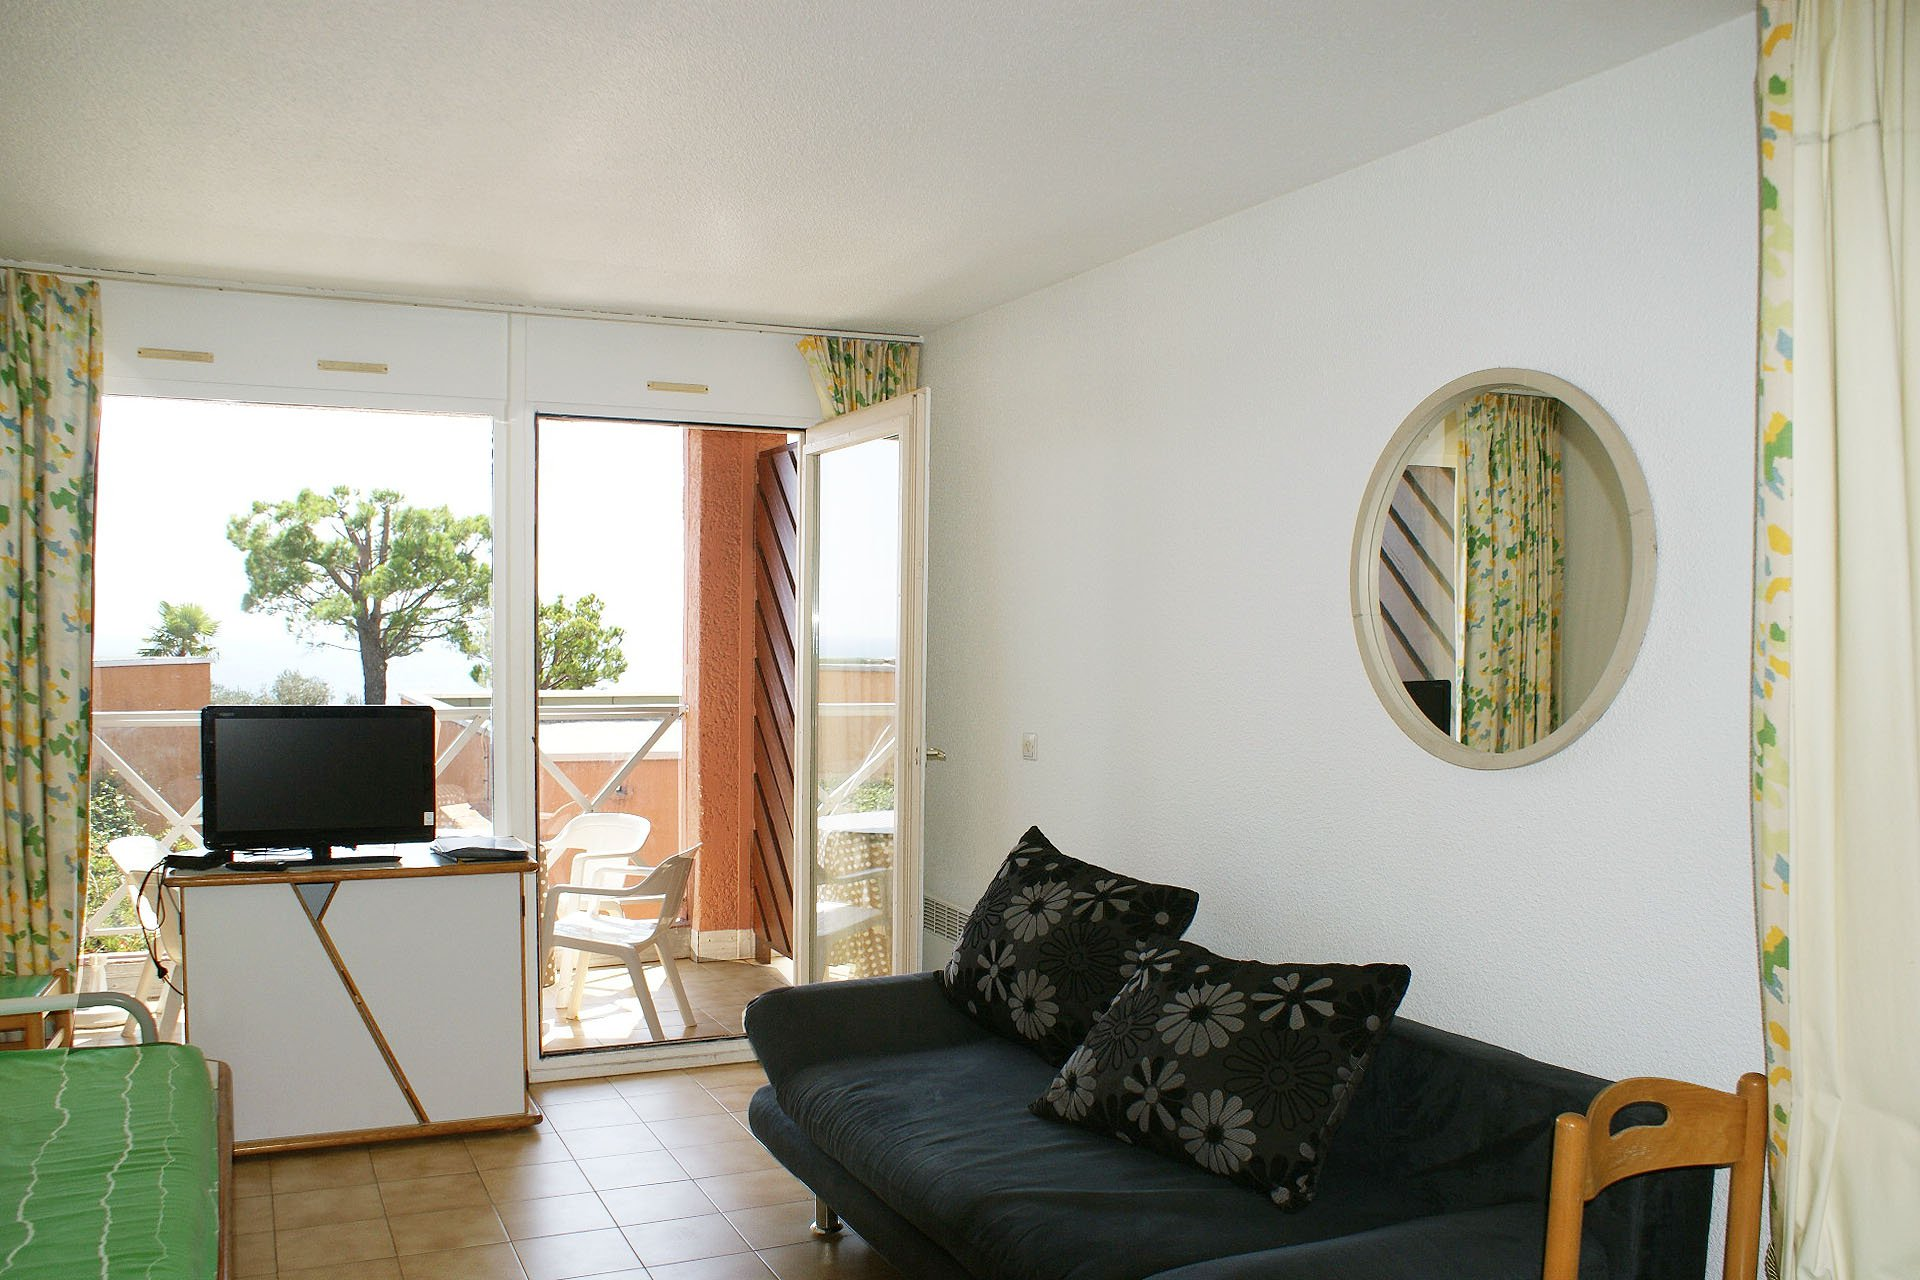 1 bedroom with nice seaview